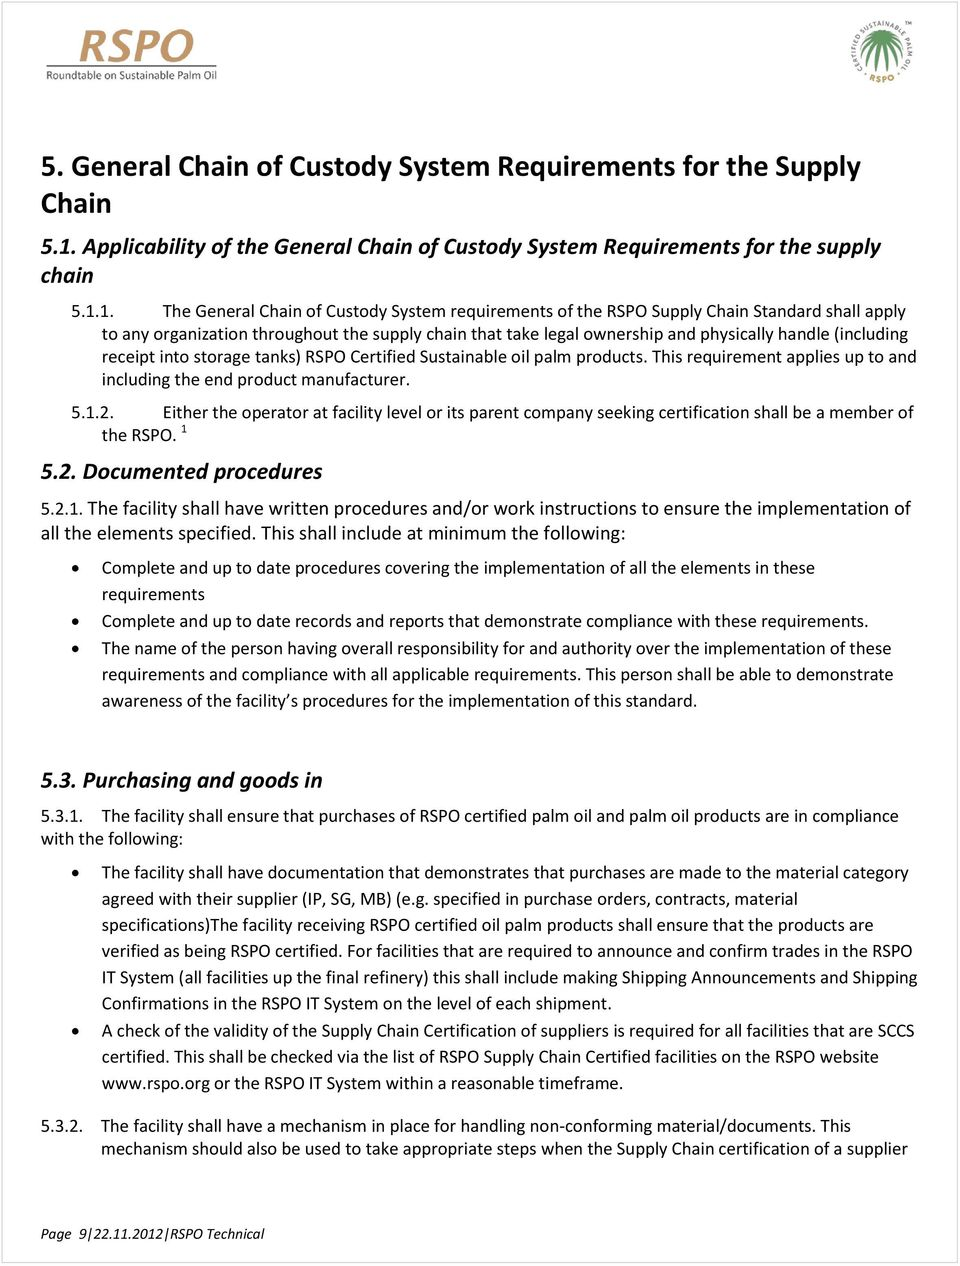 1. The General Chain of Custody System requirements of the RSPO Supply Chain Standard shall apply to any organization throughout the supply chain that take legal ownership and physically handle